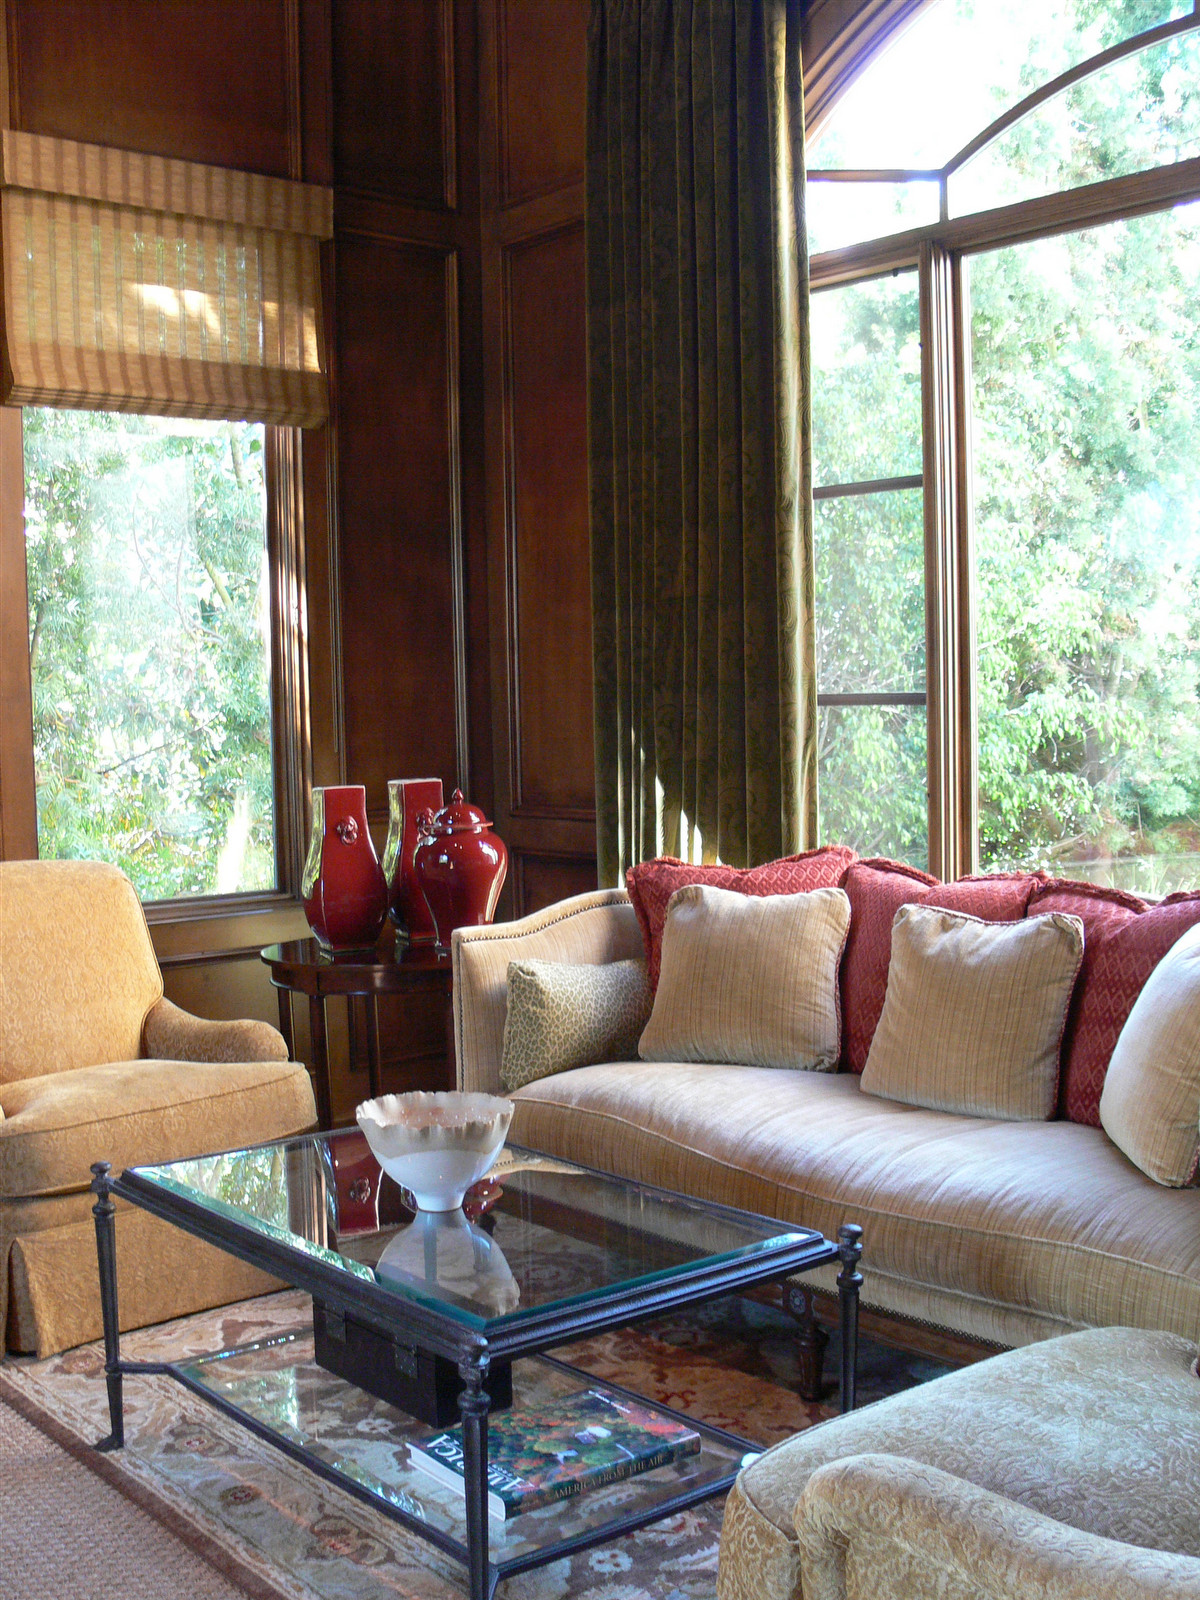 Country Living Room Decorating Ideas Lovely 27 Country Living Room Design Ideas Decoration Love